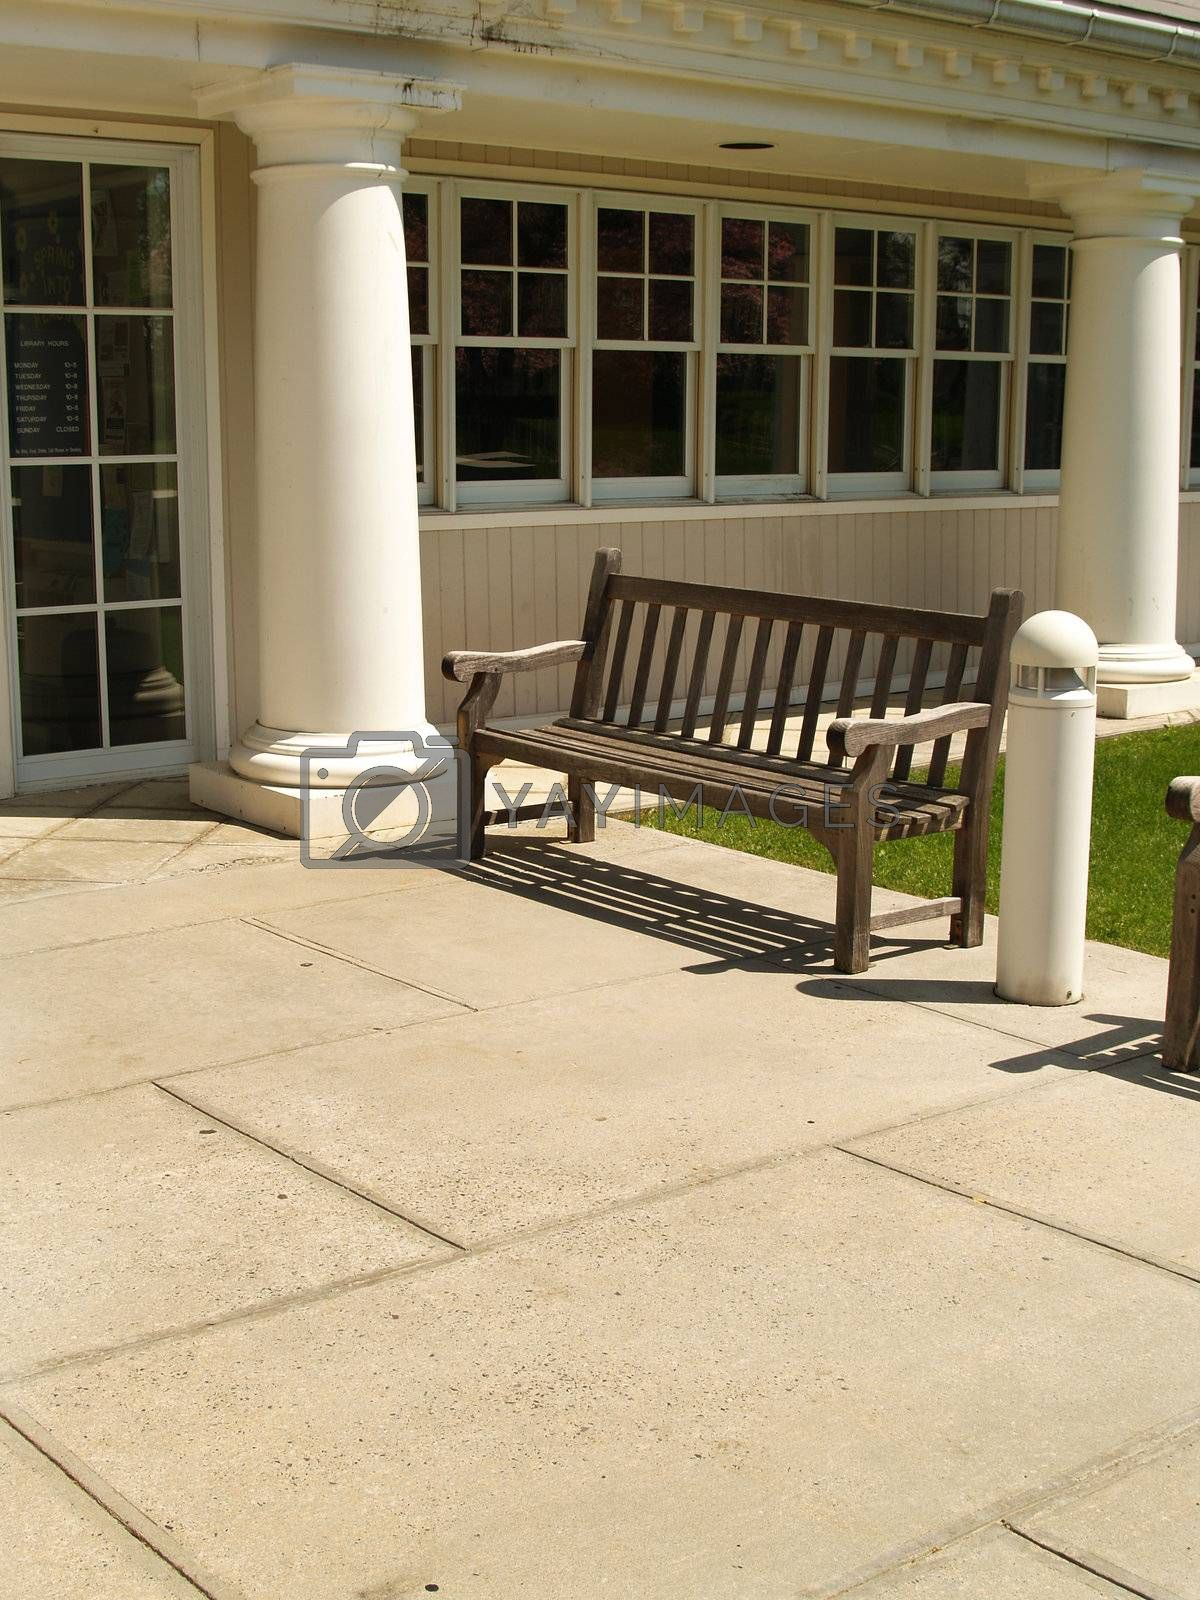 an empty bench outside a building by a sidewalk on a sunny day